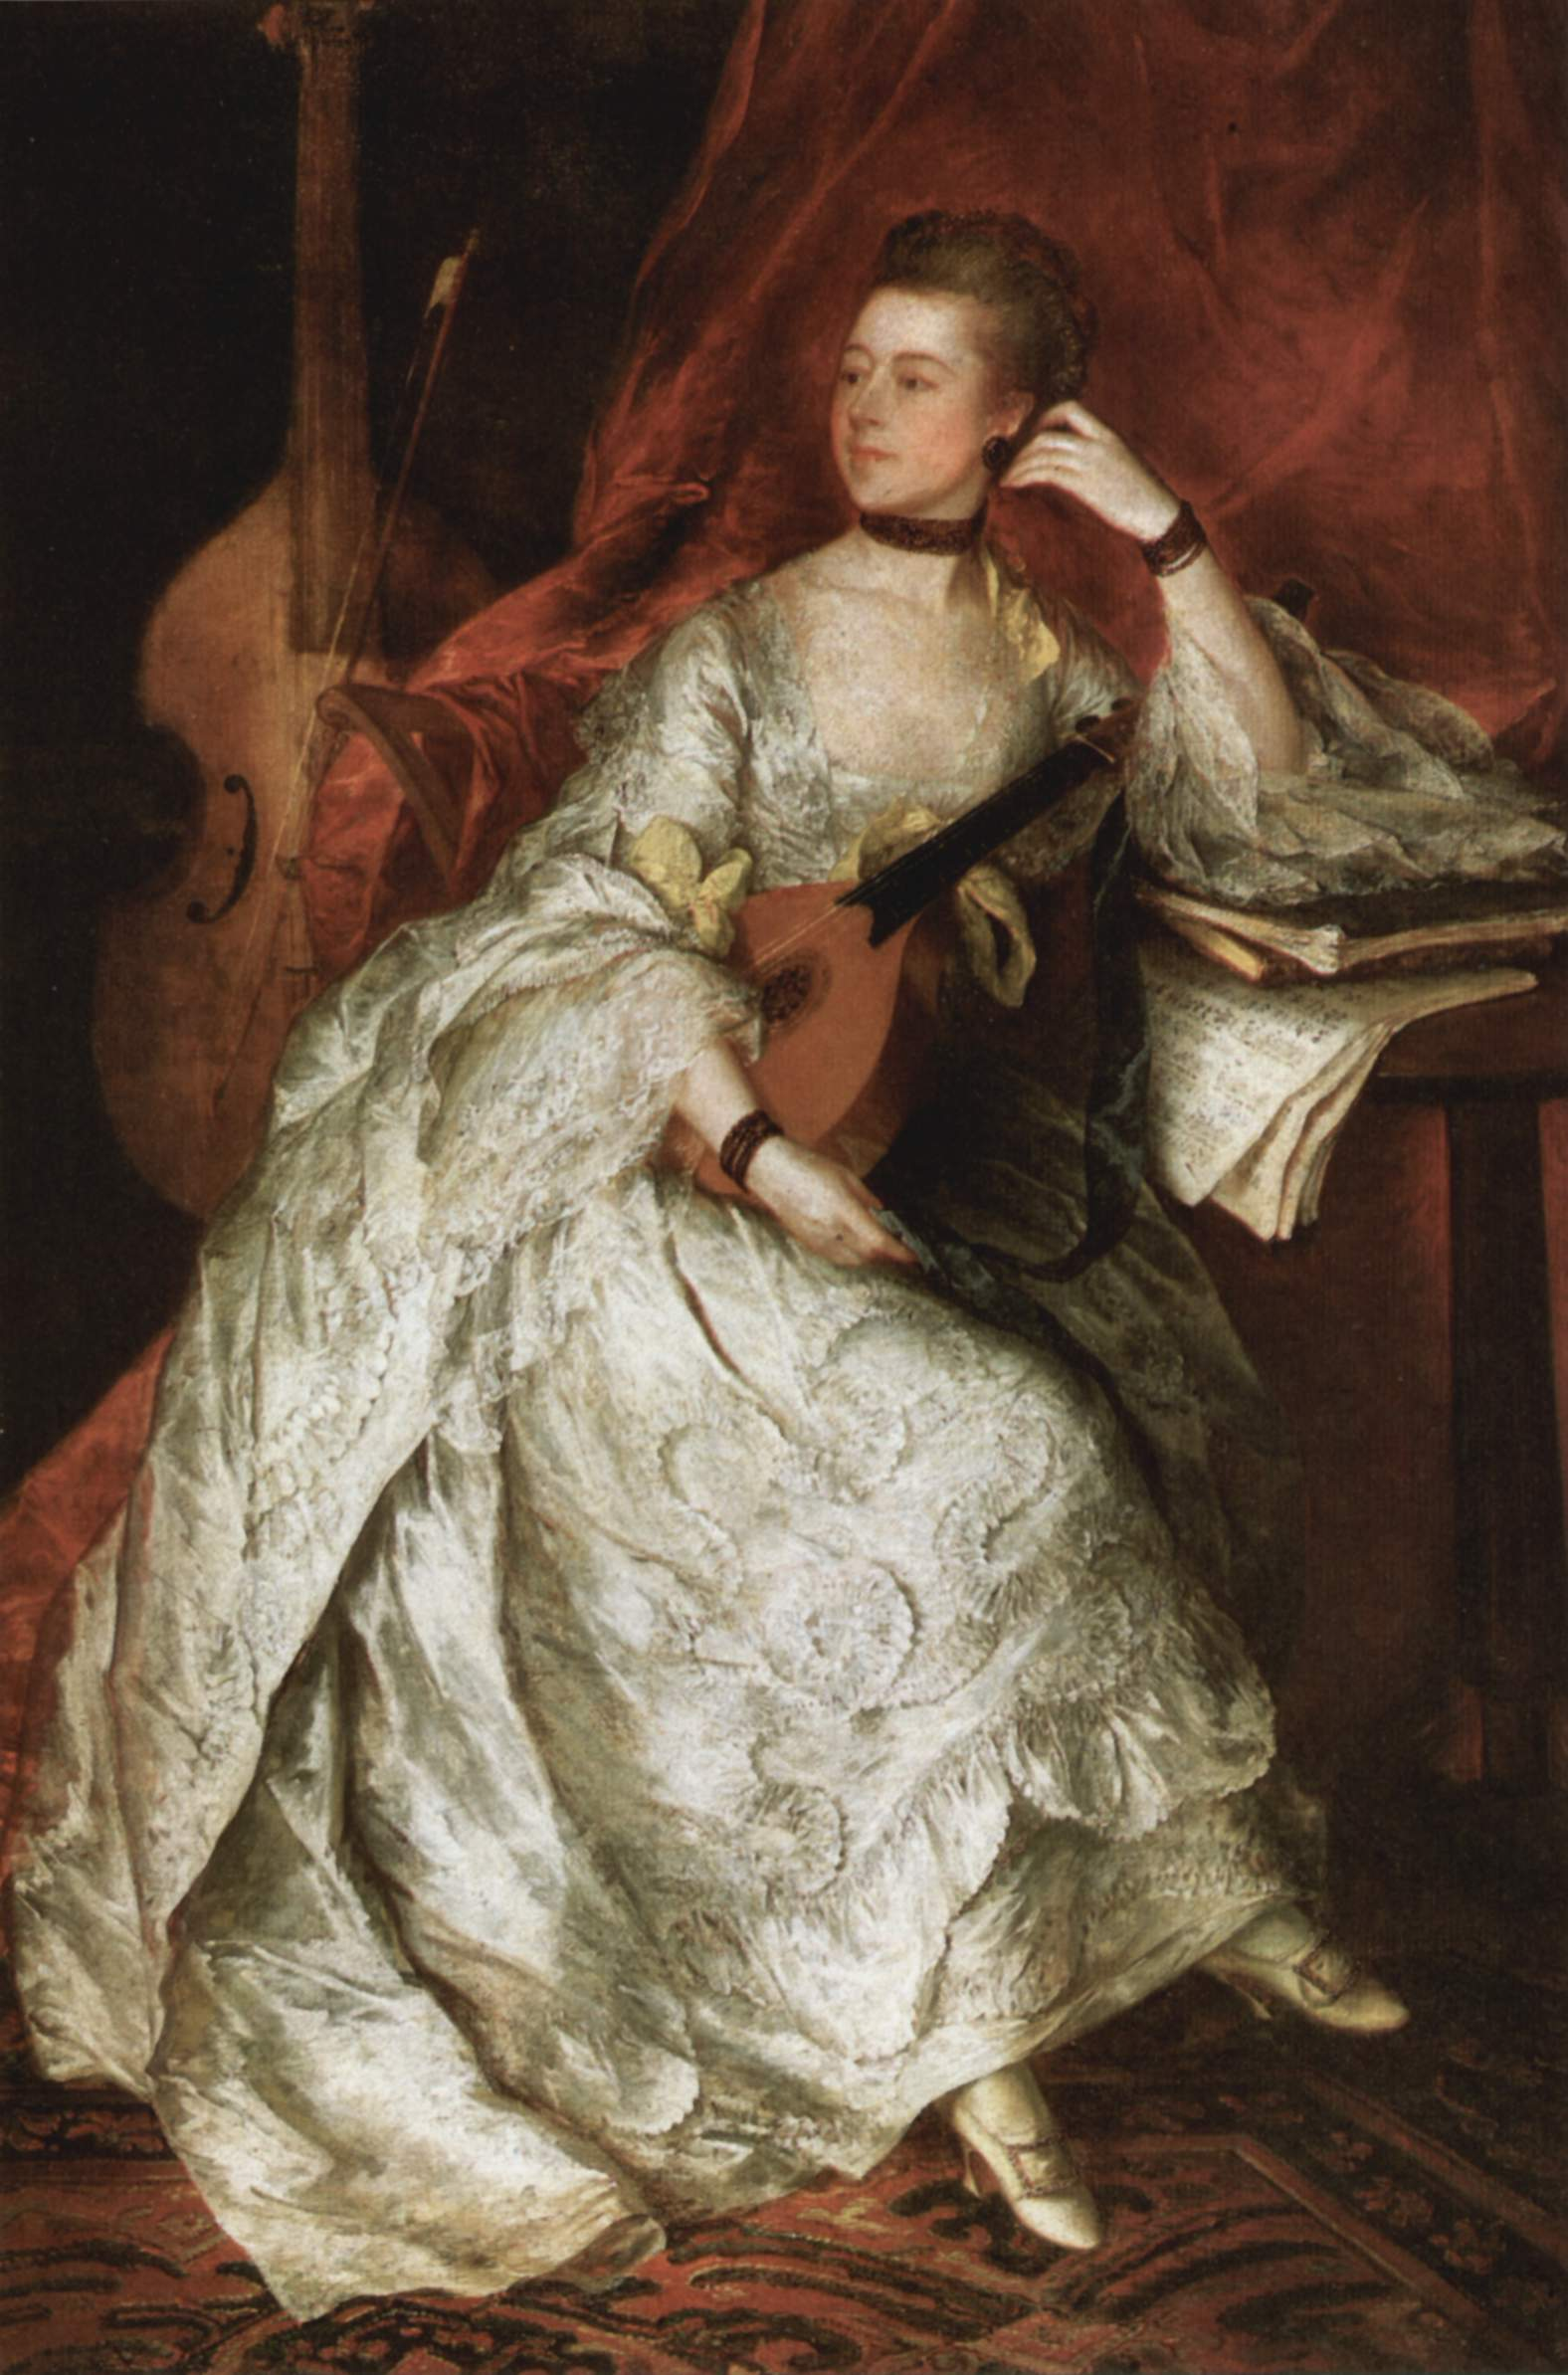 http://uploads0.wikiart.org/images/thomas-gainsborough/portrait-of-ann-ford-later-mrs-thicknesse-1760.jpg